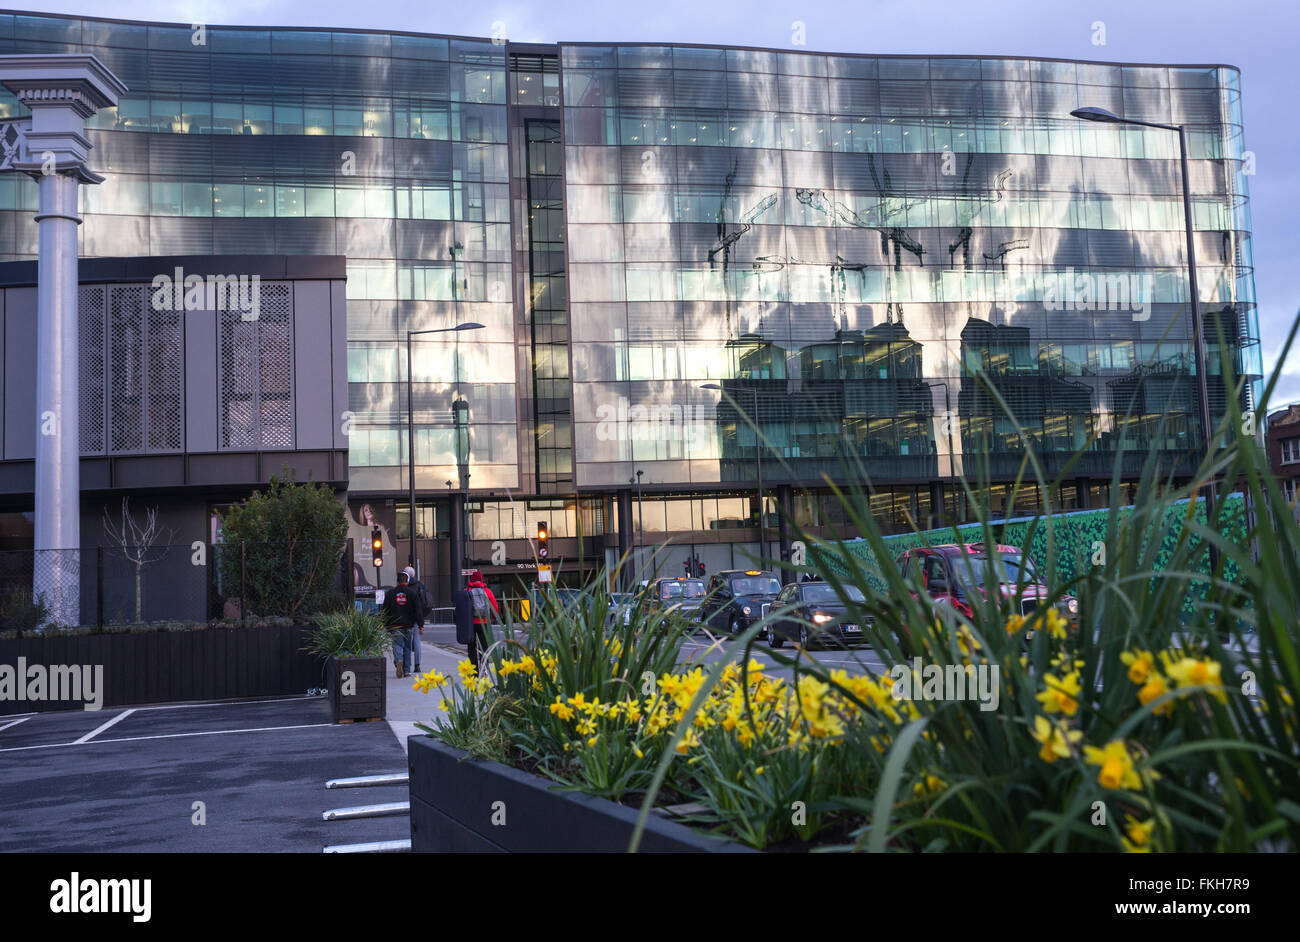 Kings place building in Kings Cross where the Guardian and Observer newspapers are based - Stock Image